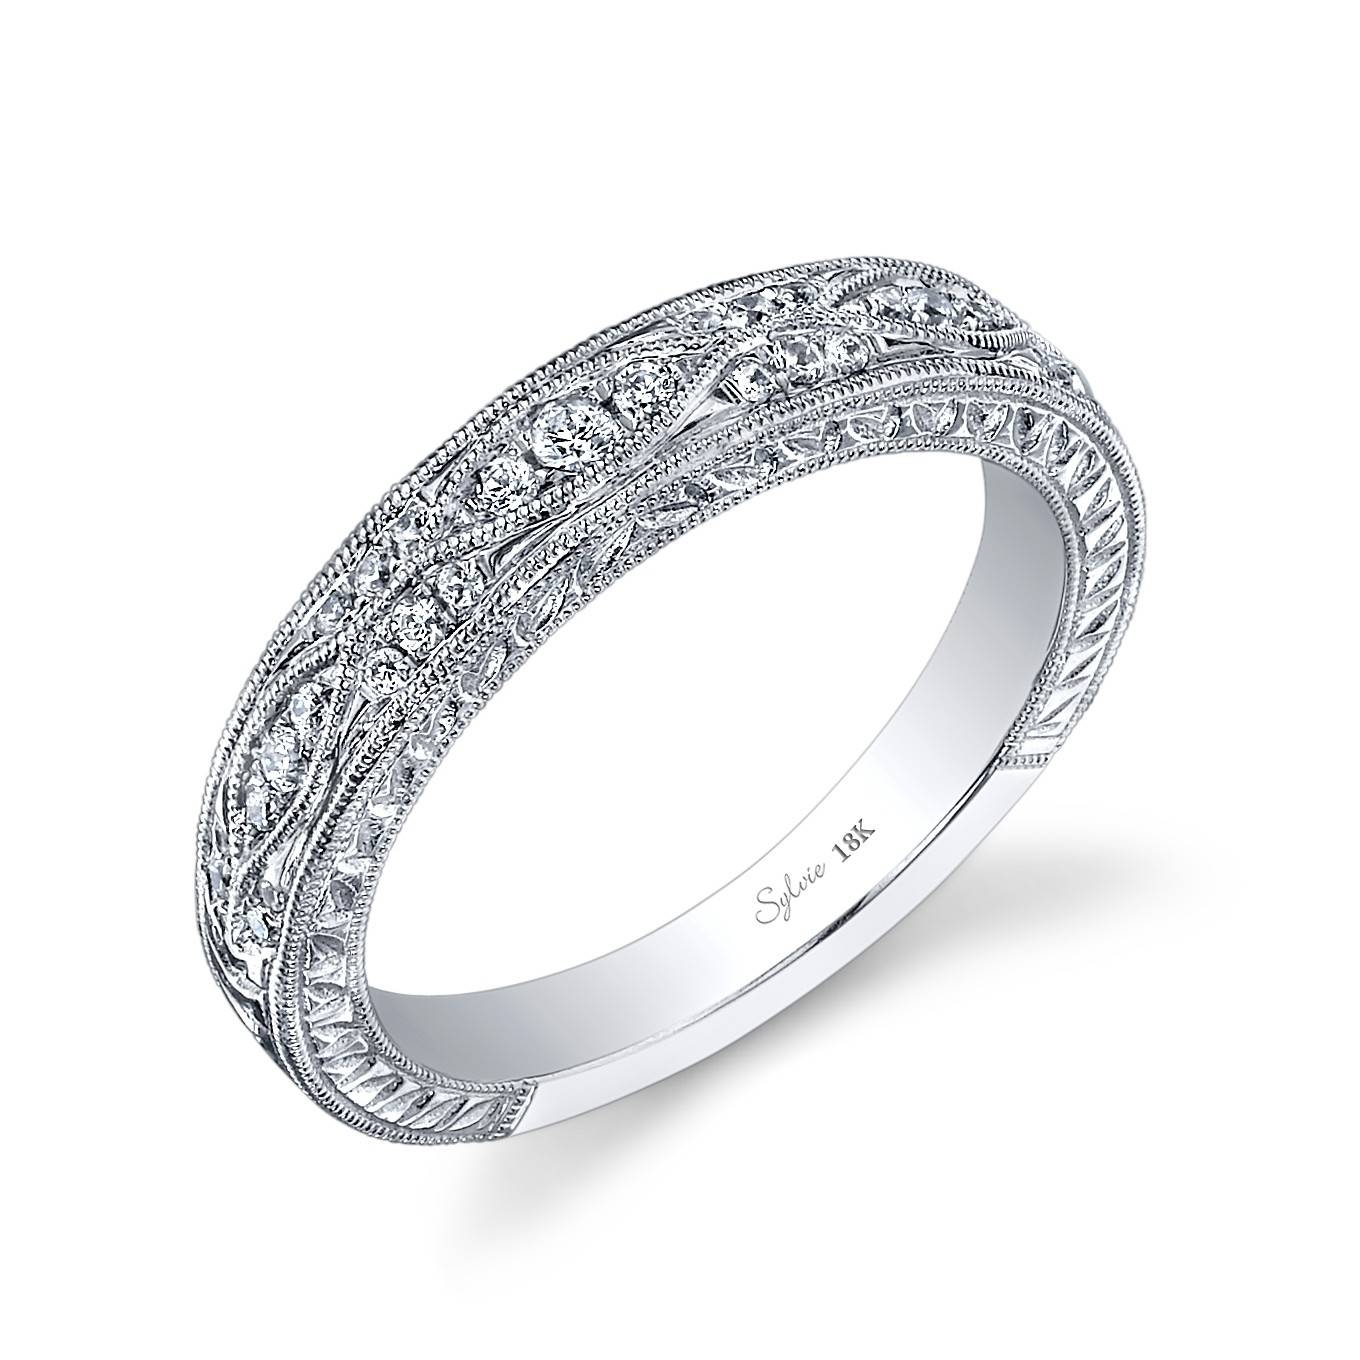 Wedding Rings : Engraved Wedding Band Designs Engravable Wedding With Regard To Engrave Wedding Bands (View 13 of 15)